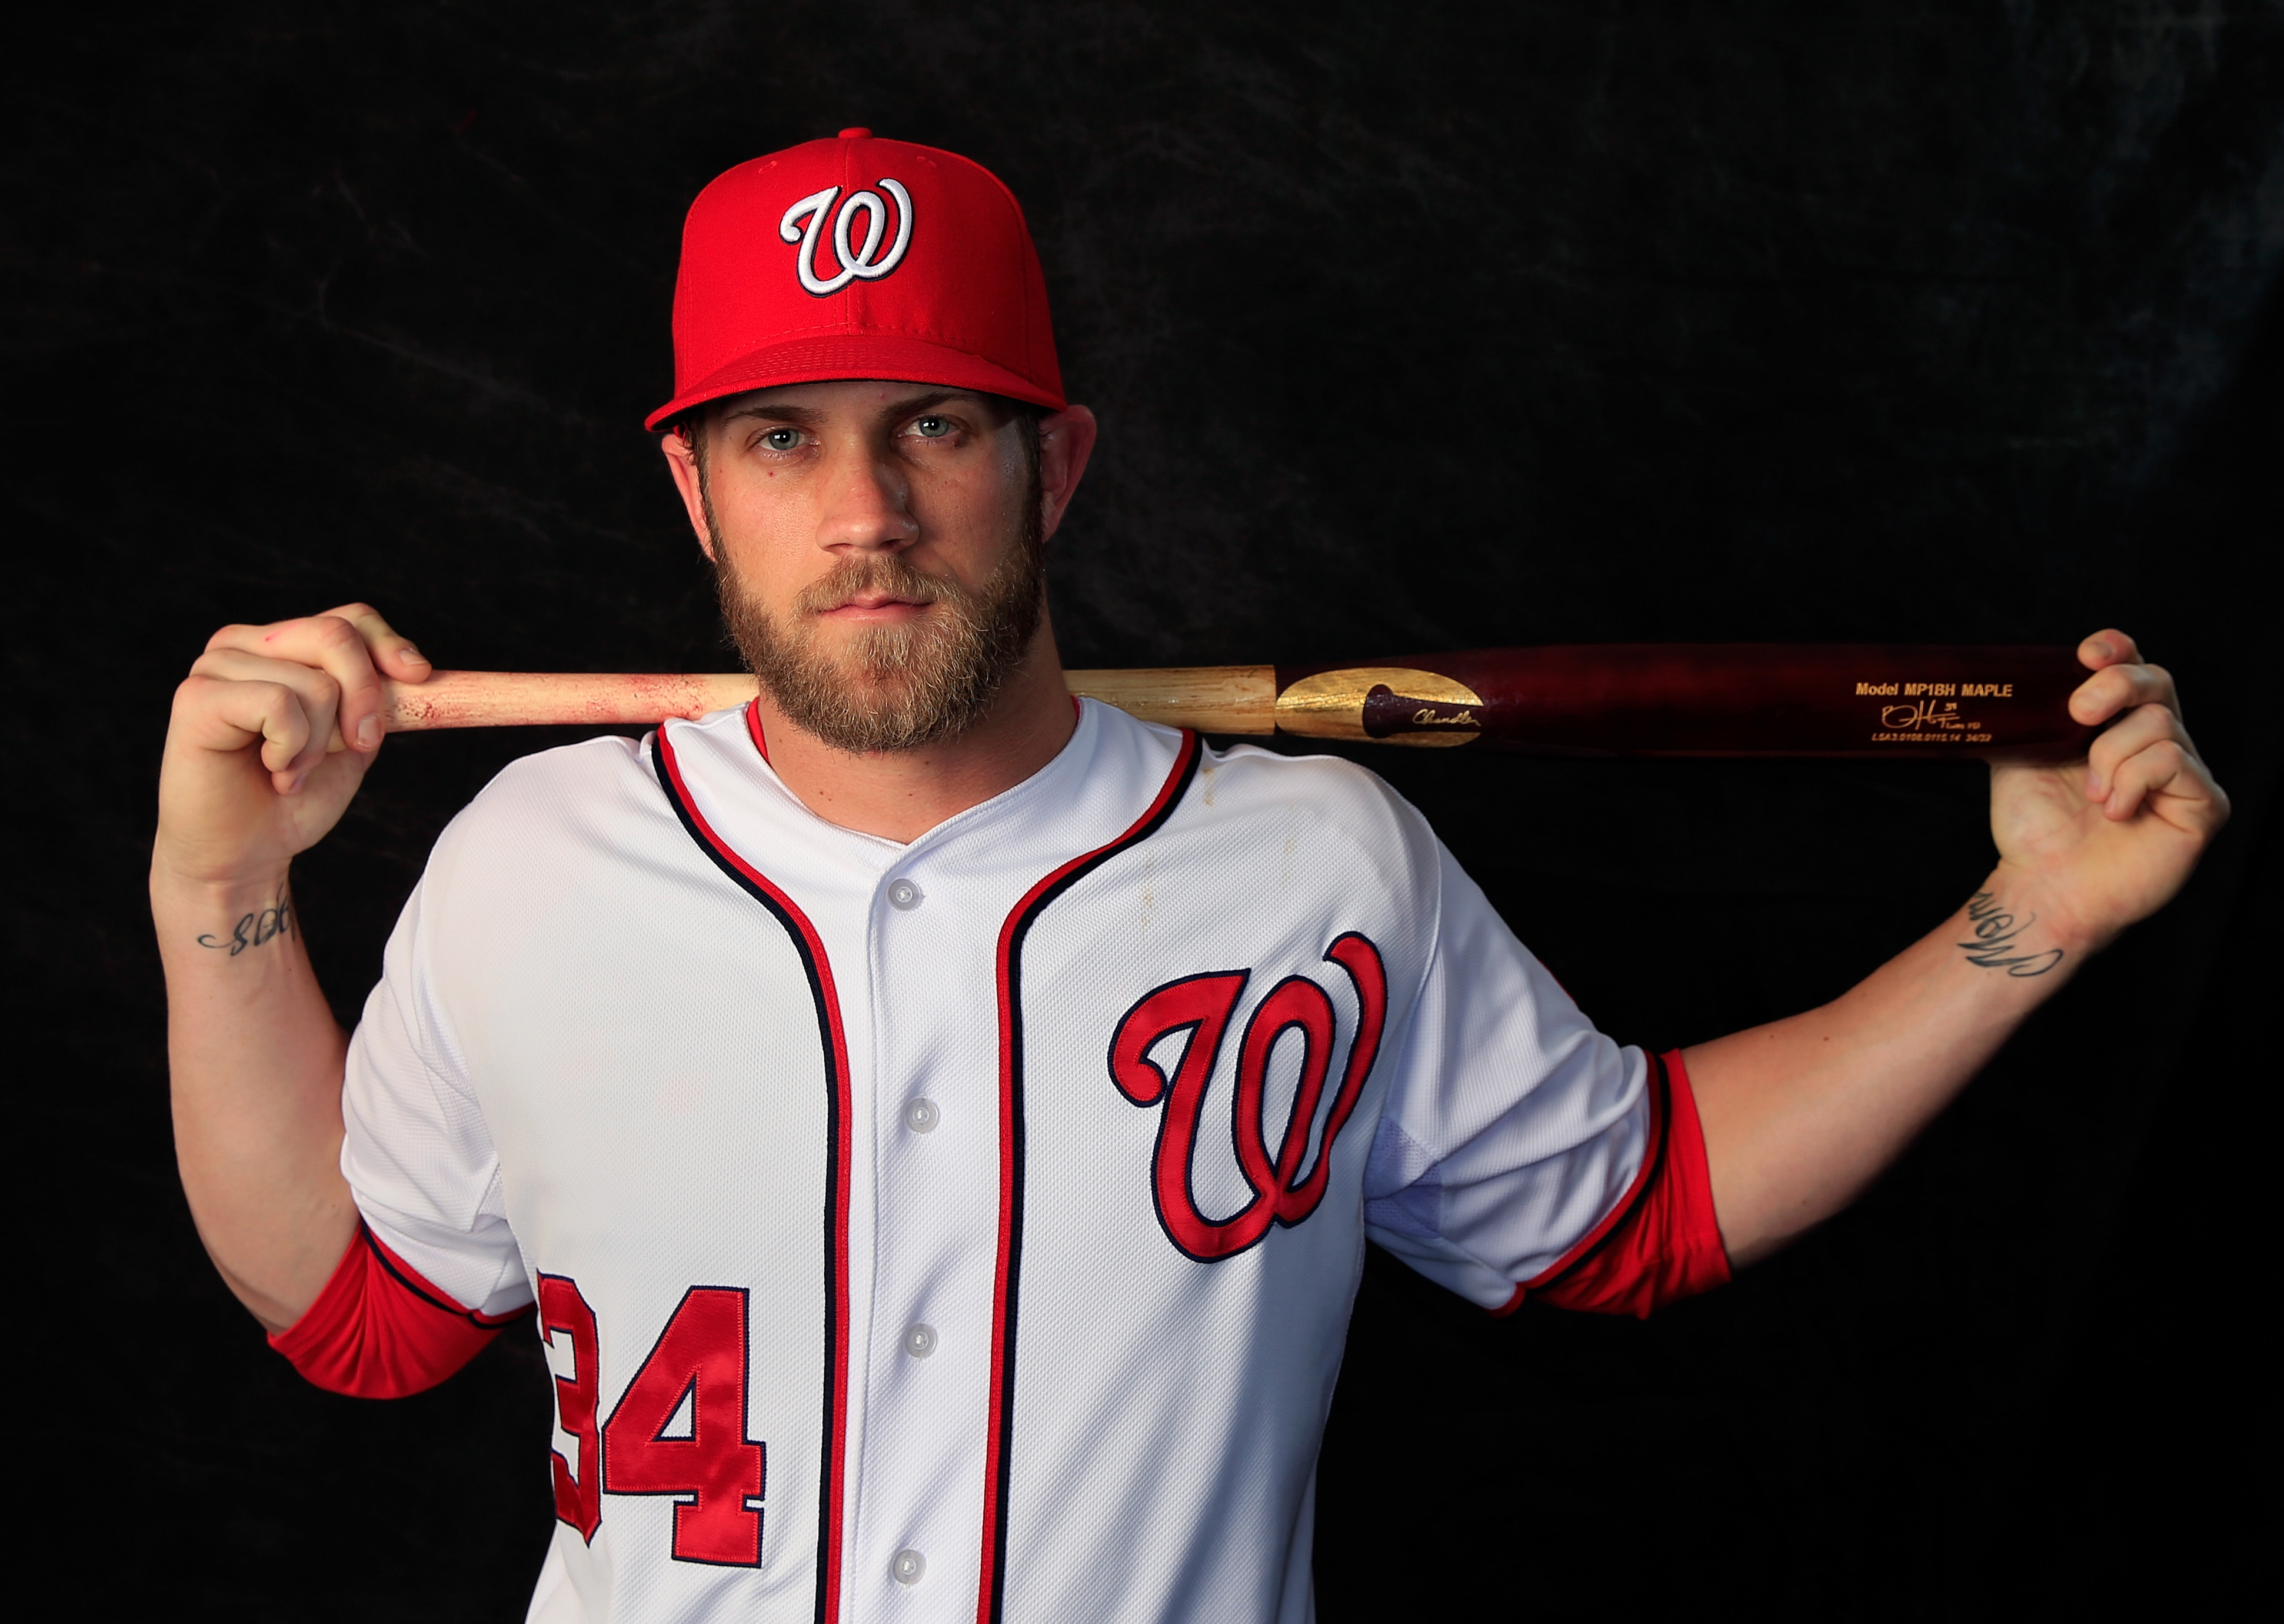 63530aace Bryce Harper signs record-breaking 10-year extension with Under Armour,  putting Nike on notice